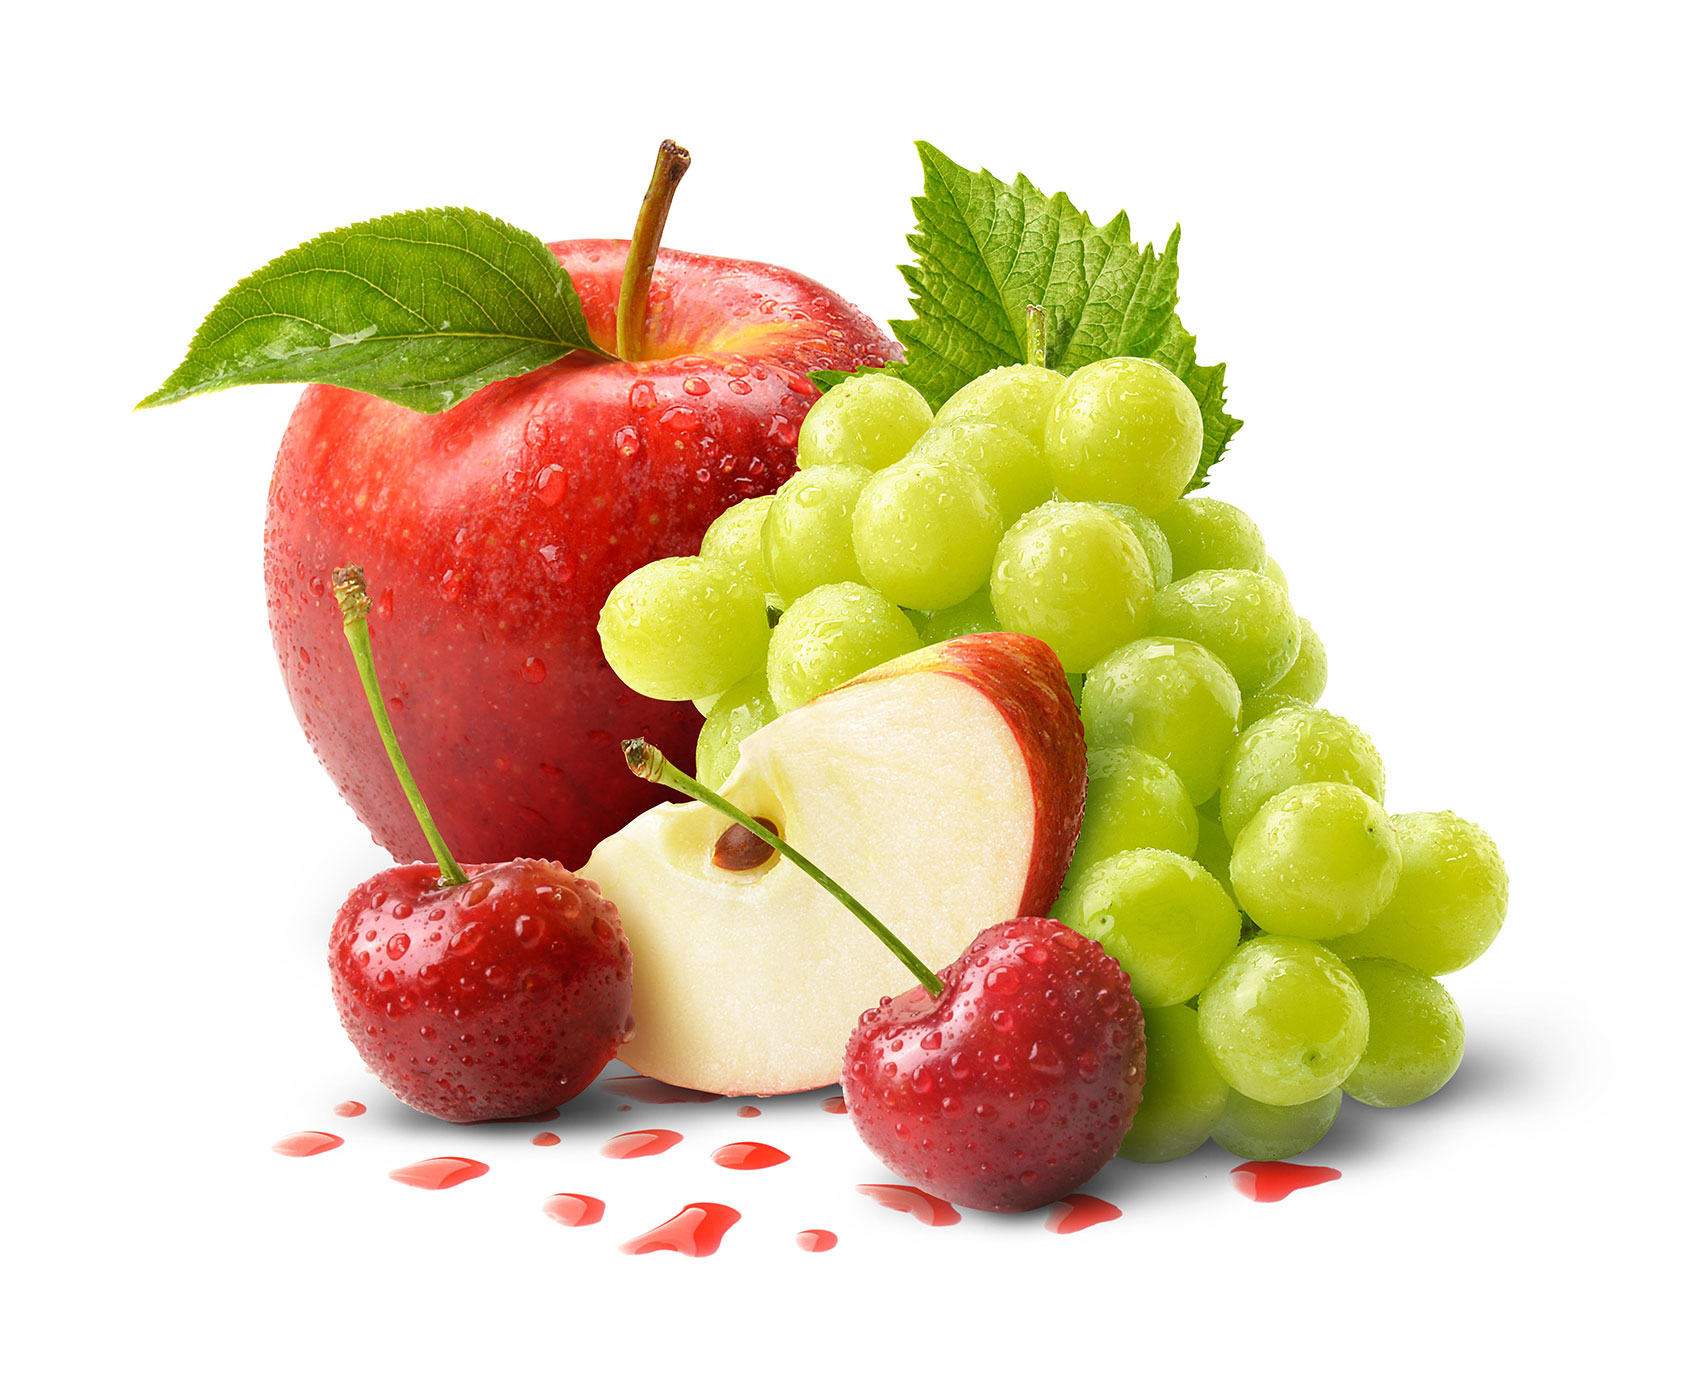 mike wepplo photoreal photography apple grapes cherry fruit